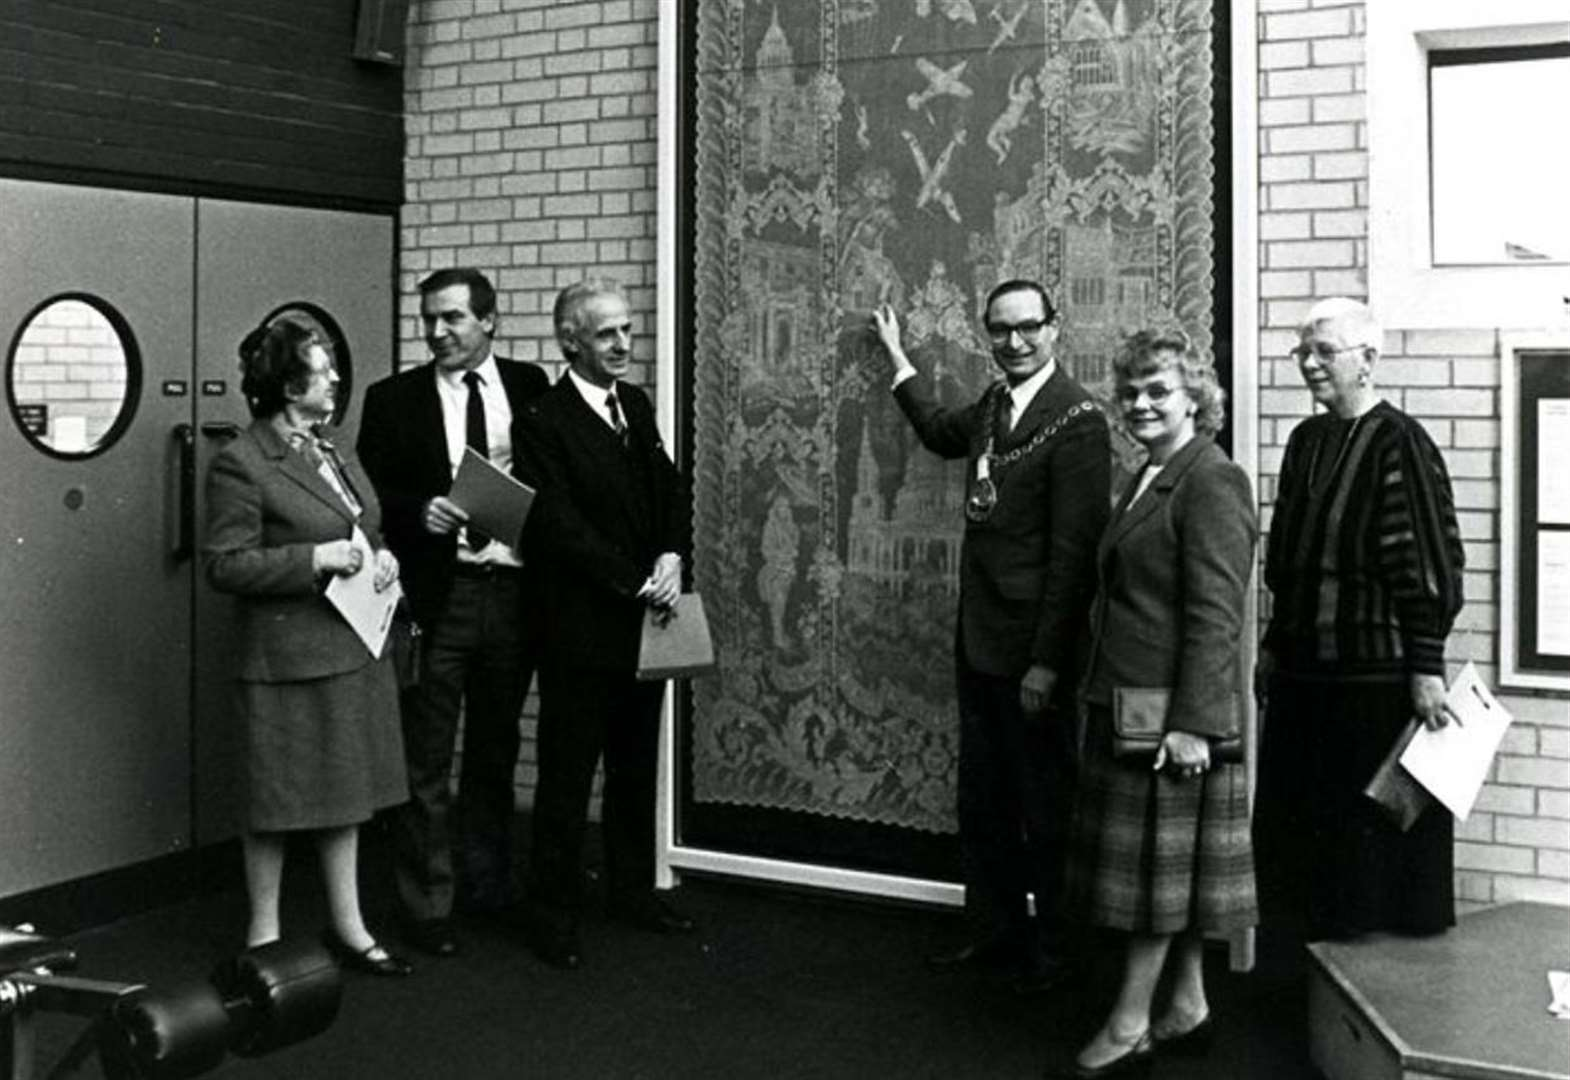 The story of the giant lace panel